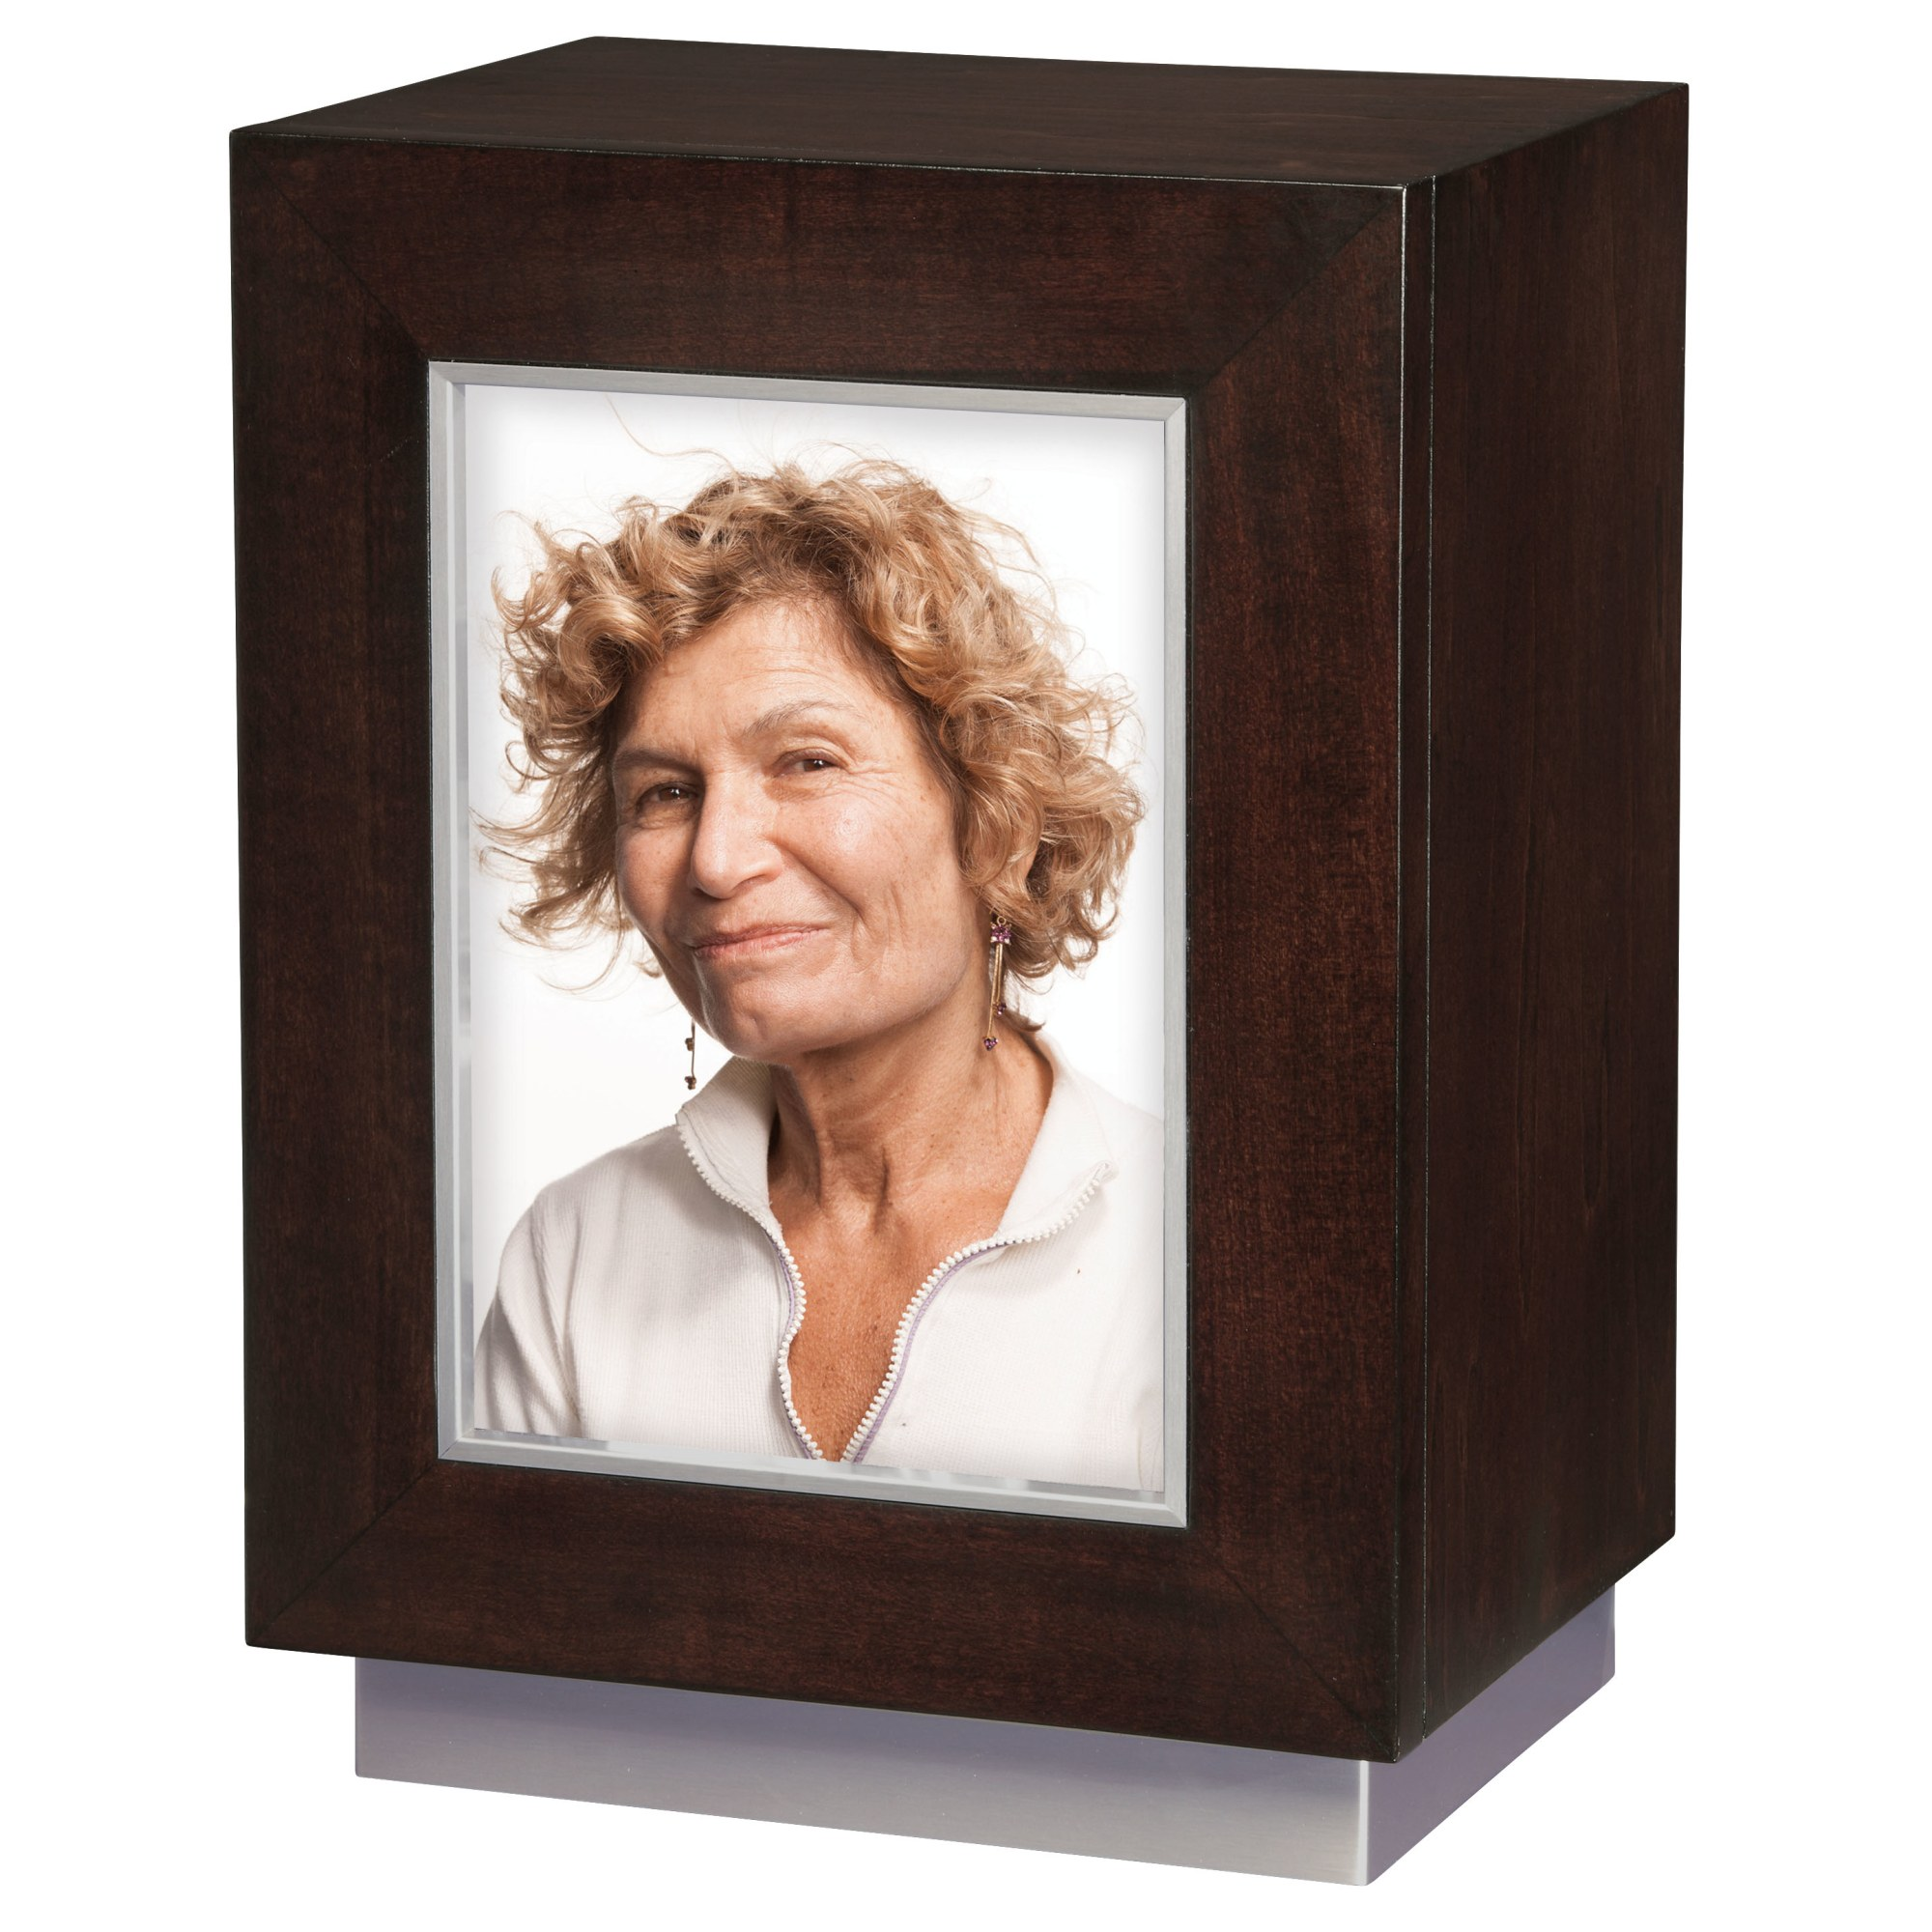 Image for 800-212 Accolade Mantel Urn Chest from Howard Miller Official Website